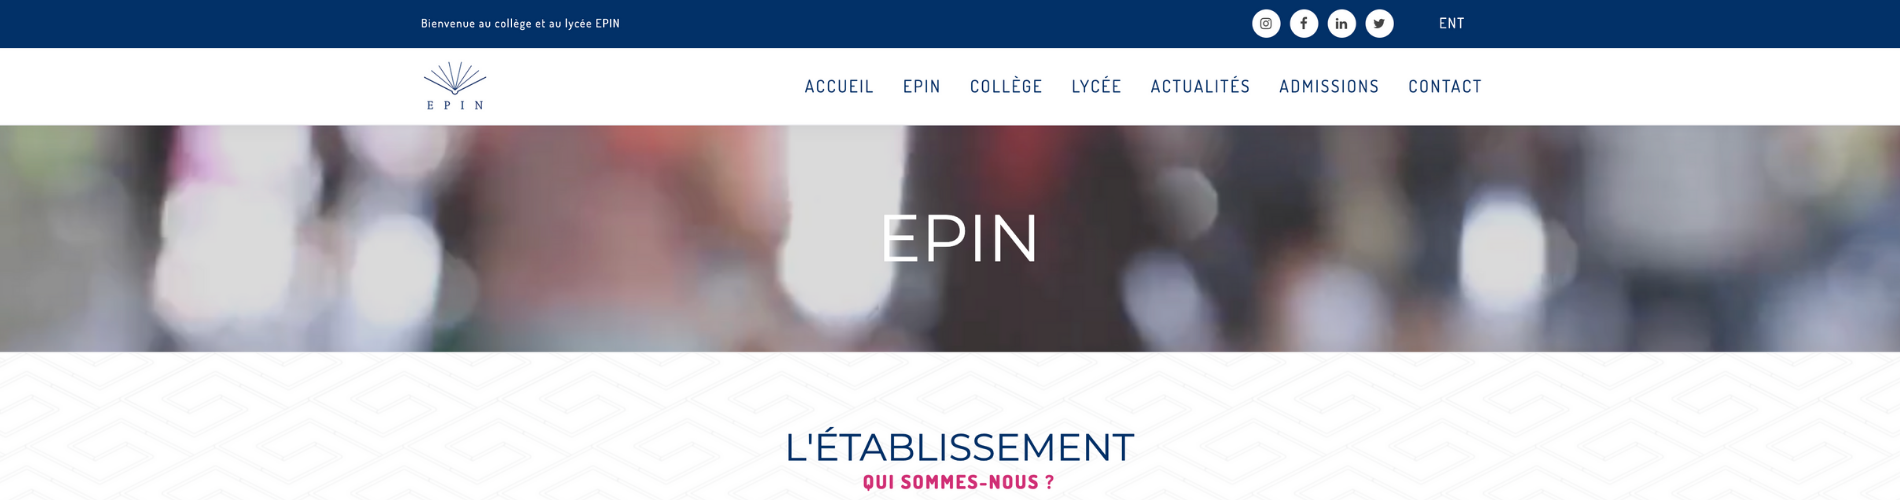 Screen site EPIN 1